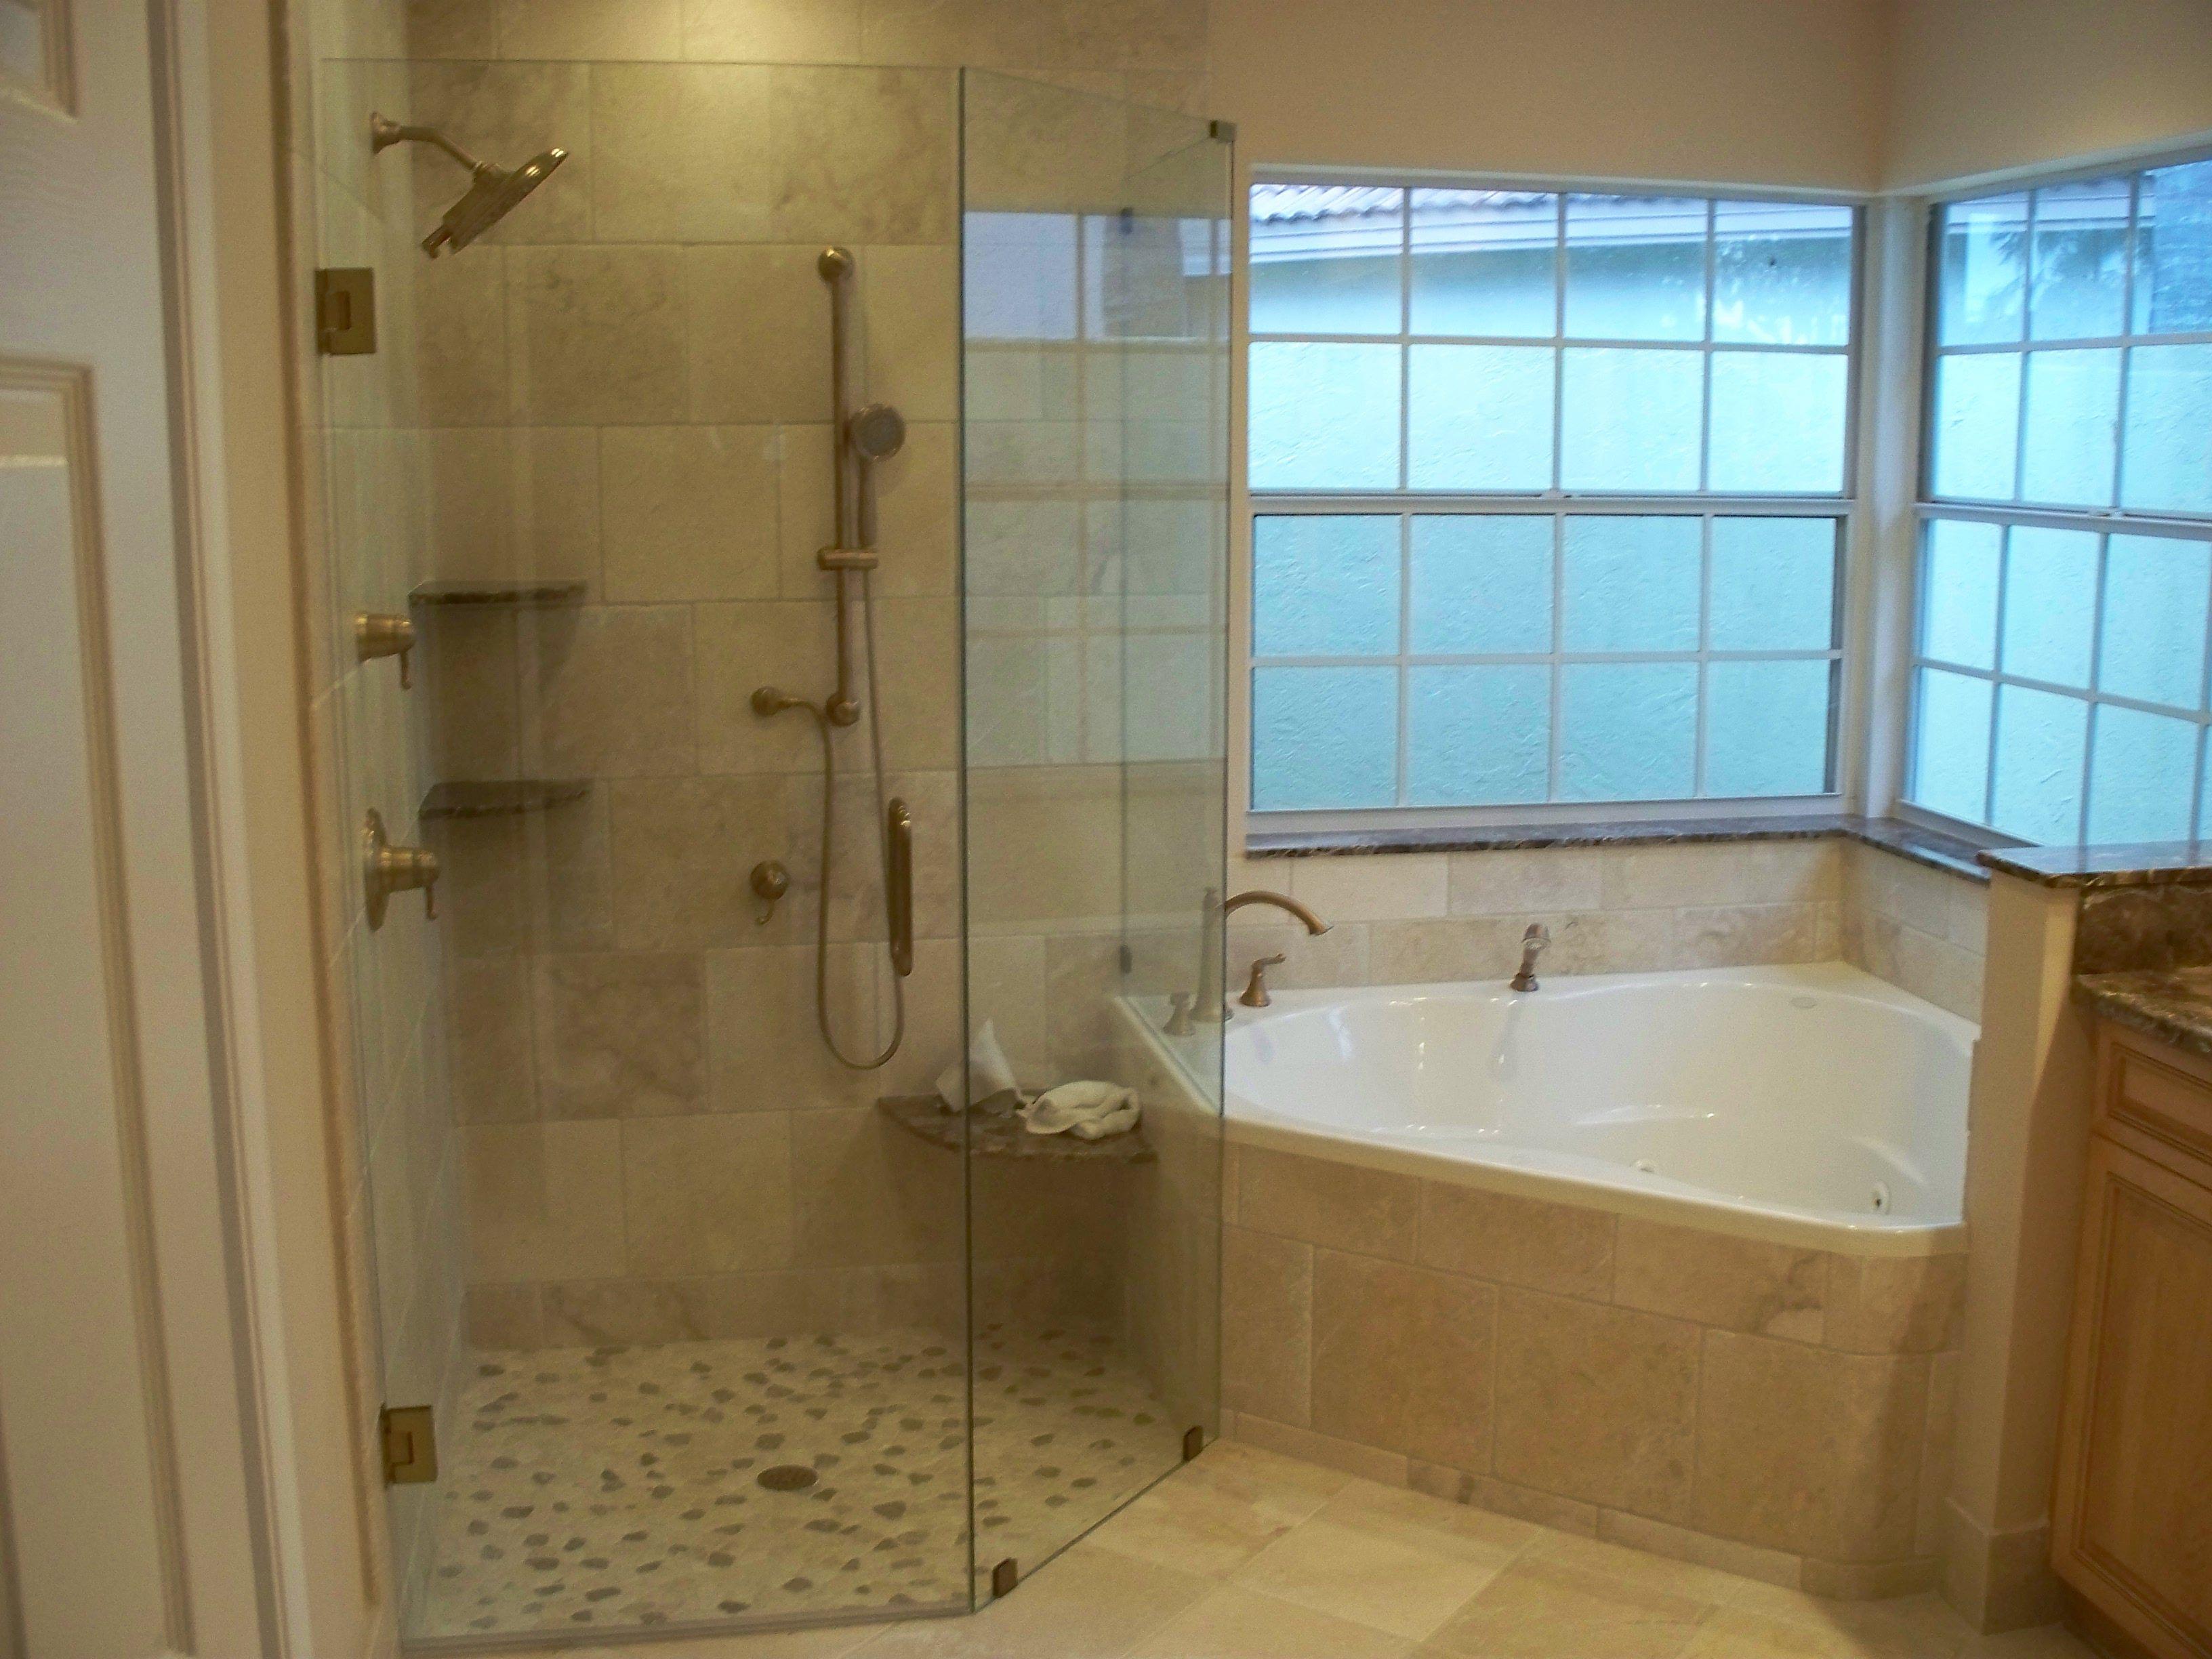 bathroom with corner tub fresh designs built around a corner bathtub fresh designs built around a corner bathtub - Bathroom Remodel Corner Tub